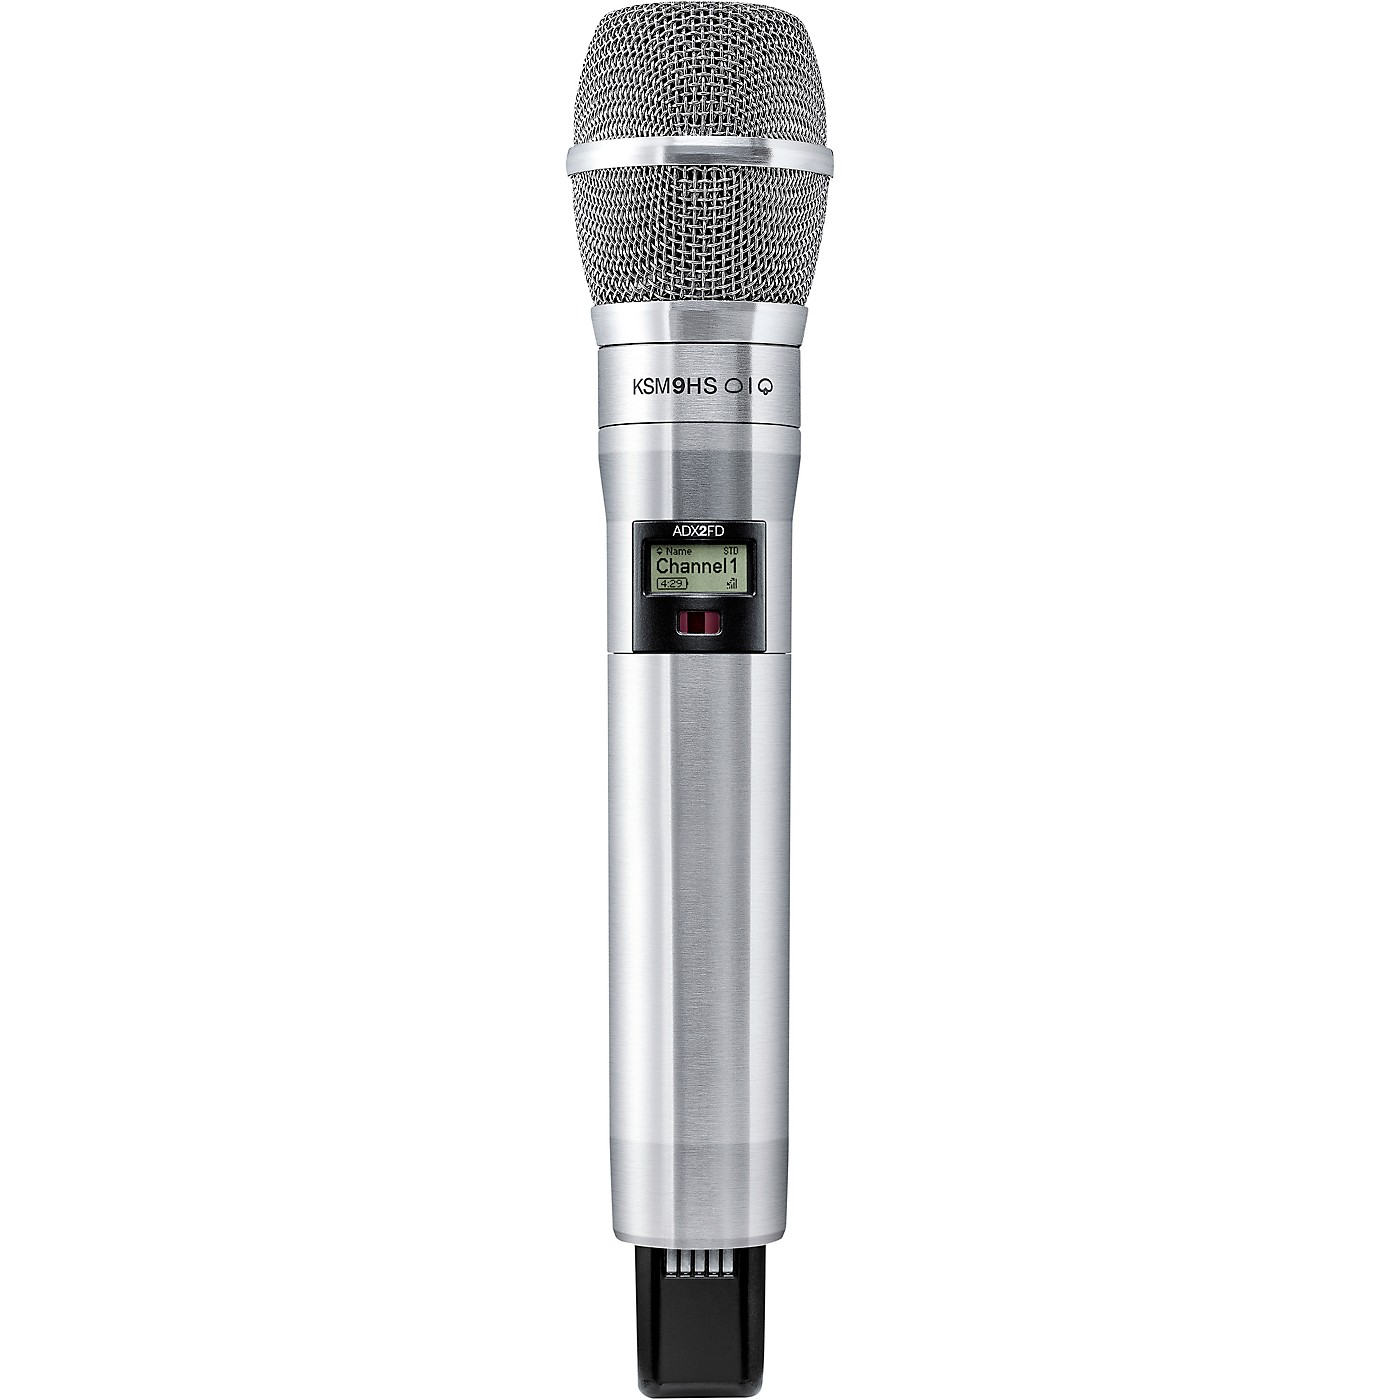 Shure Axient Digital ADX2FD/K9HSN Wireless Handheld Microphone Transmitter With KSM9HS Capsule in Nickel thumbnail